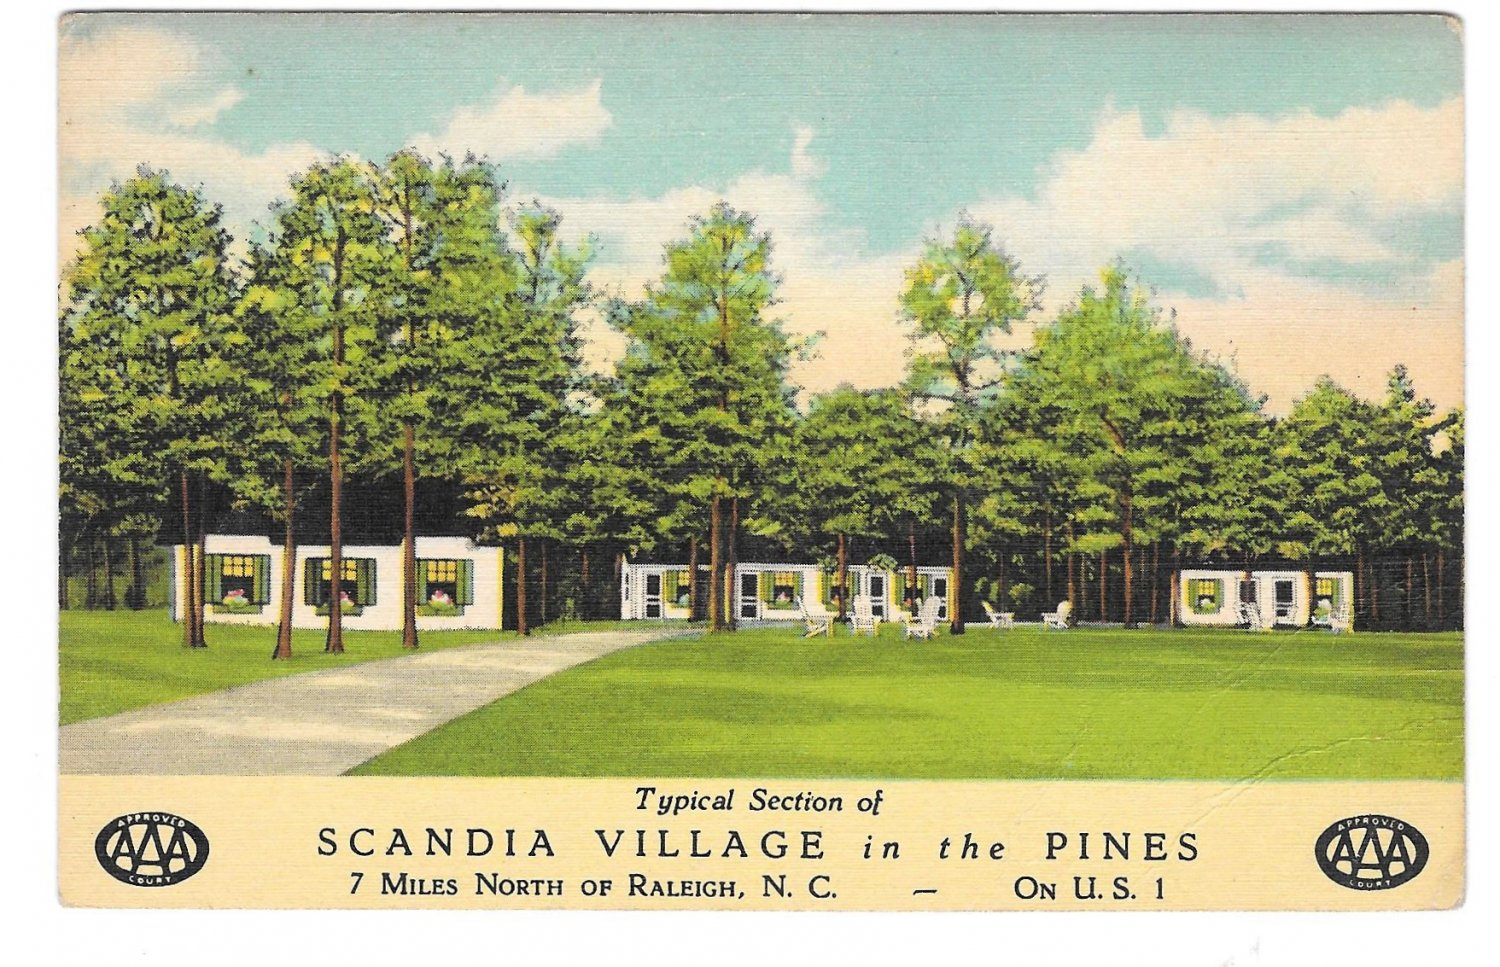 Scandia Village in the Pines US Route 1 Motel Raleigh NC Vintage AAA Postcard